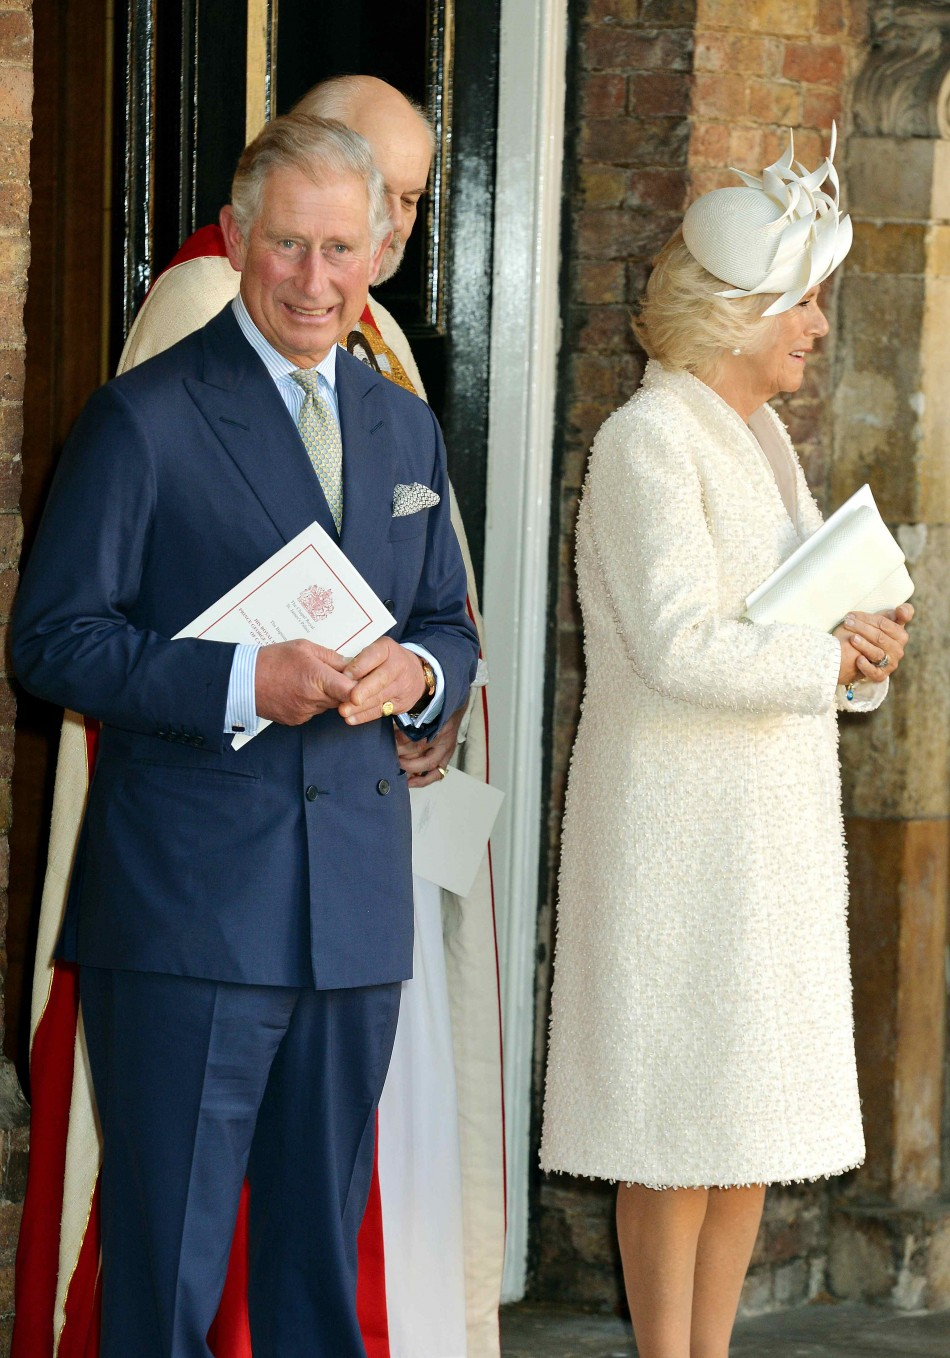 Britain's Prince Charles and His Wife Camilla, Duchess of Cornwall Leave After the Christening of Prince George at St James's Palace in London